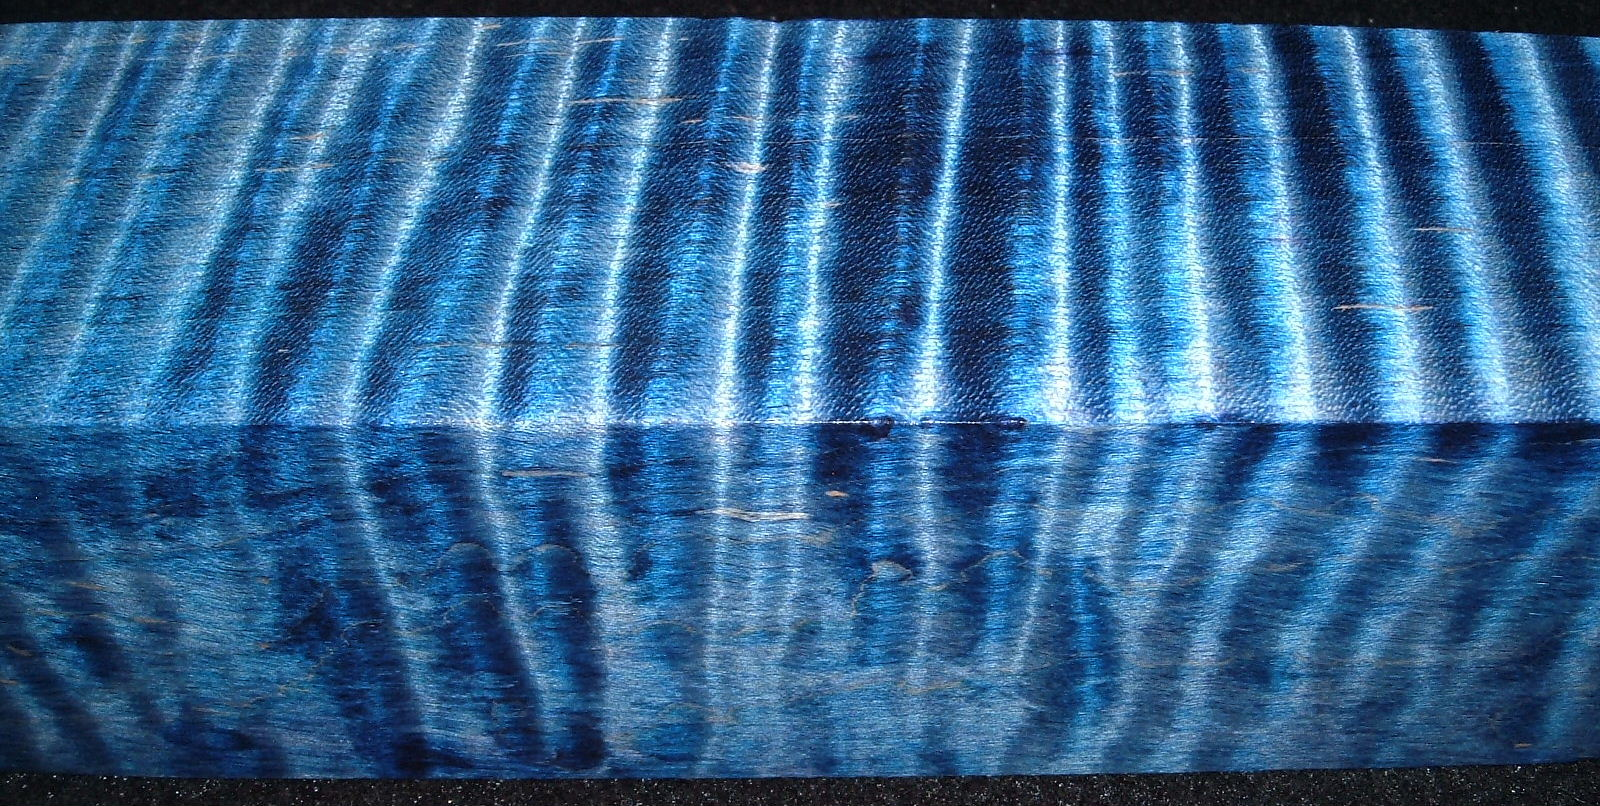 Z490, Curly Maple Dyed Stabilized, wood turning block, Blue, 1-7/8x1-7/8x6-1/4